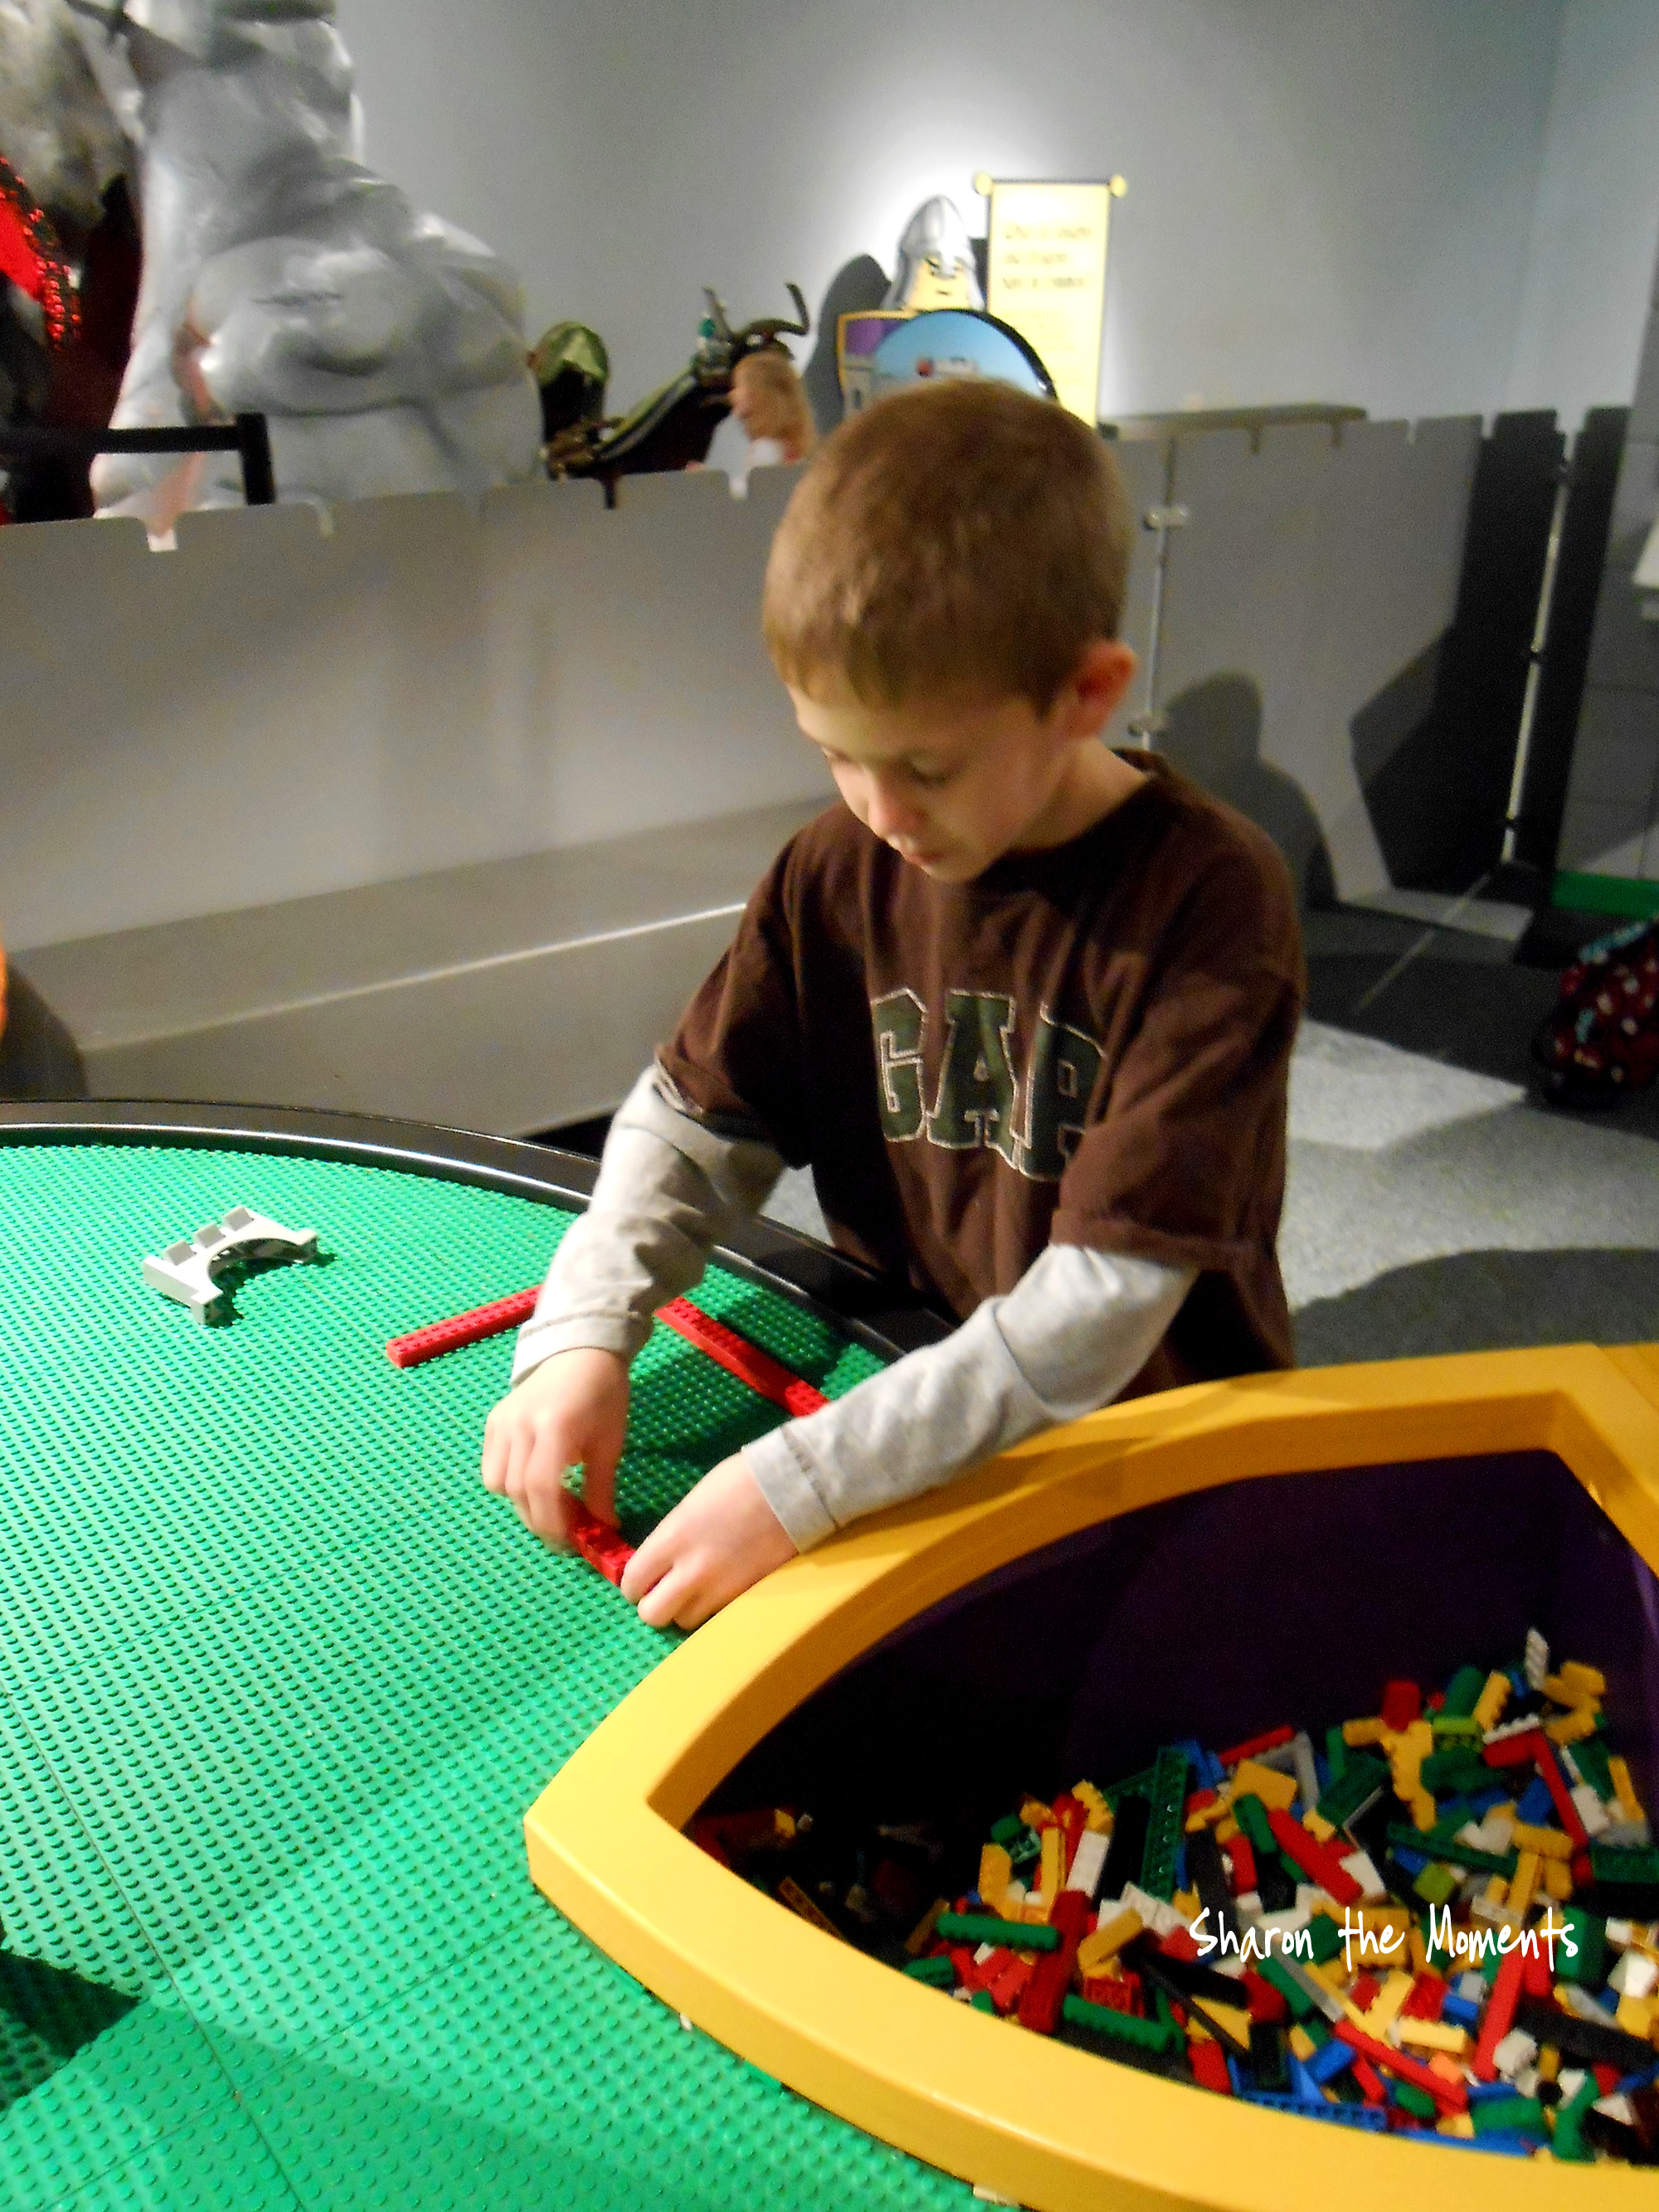 COSI Center of Science & Industry Visit for Christmas Eve Day Fun|Sharon the Moments blog